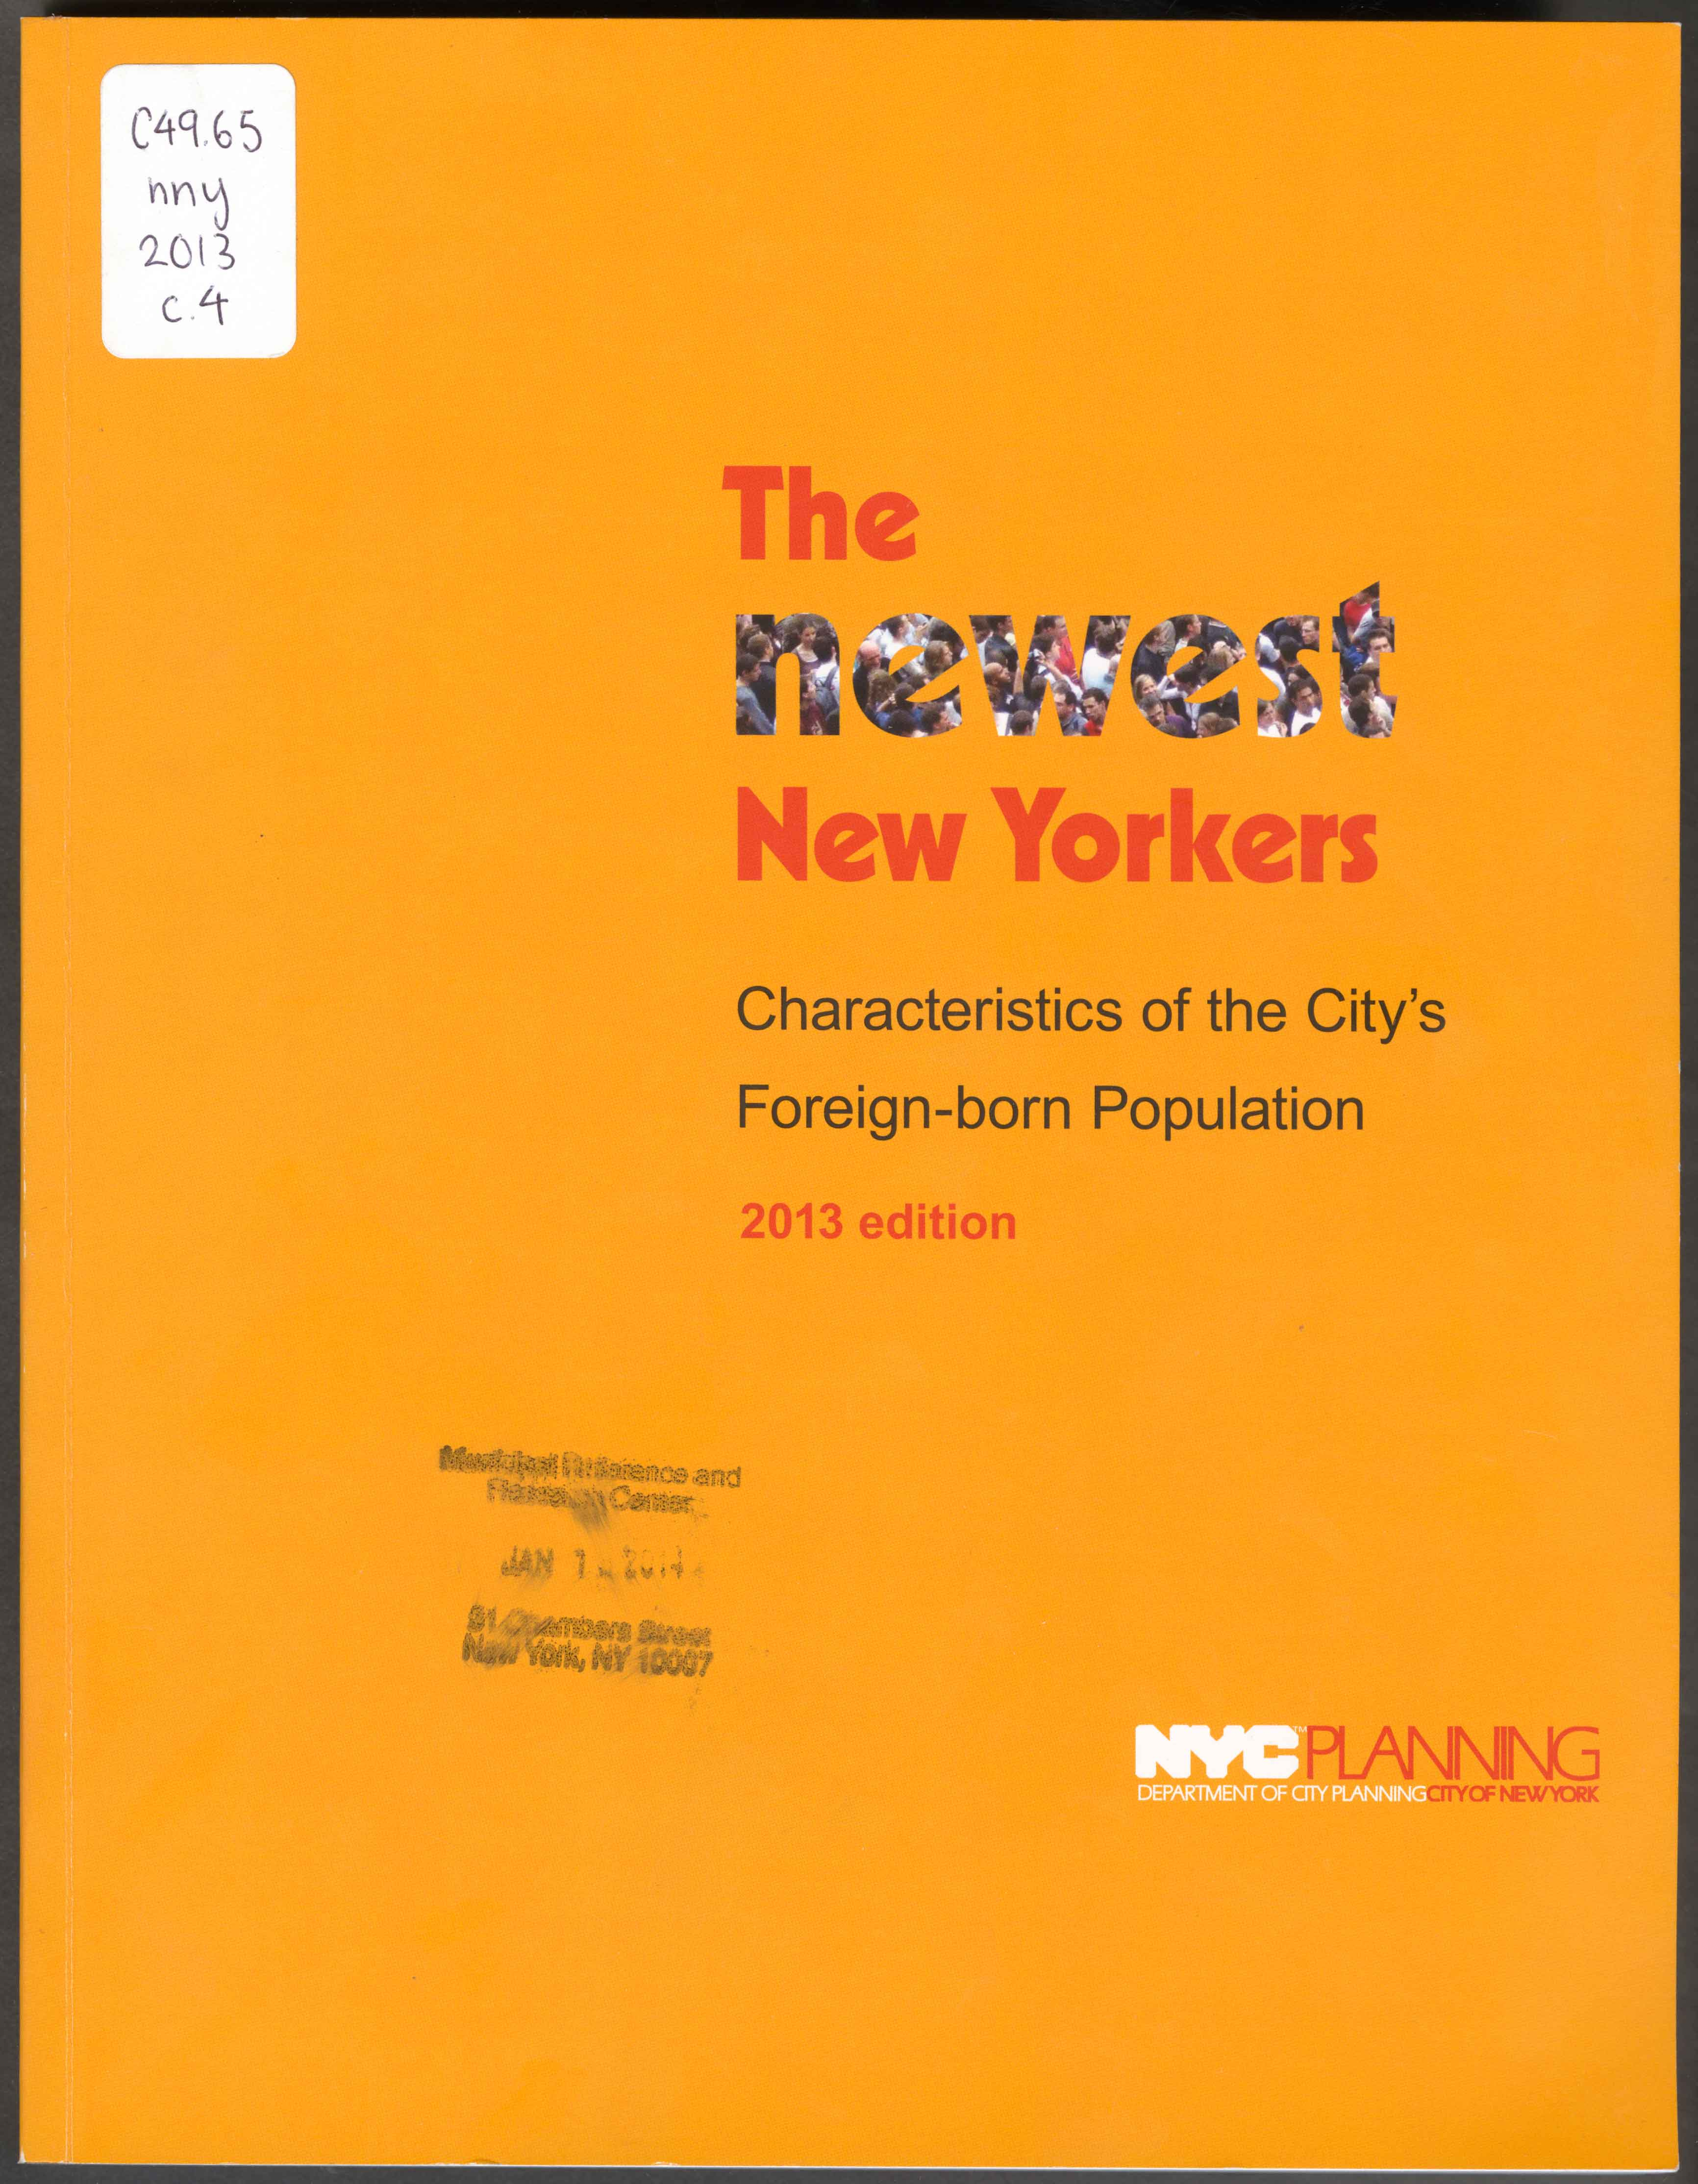 The Newest New Yorkers - 1992